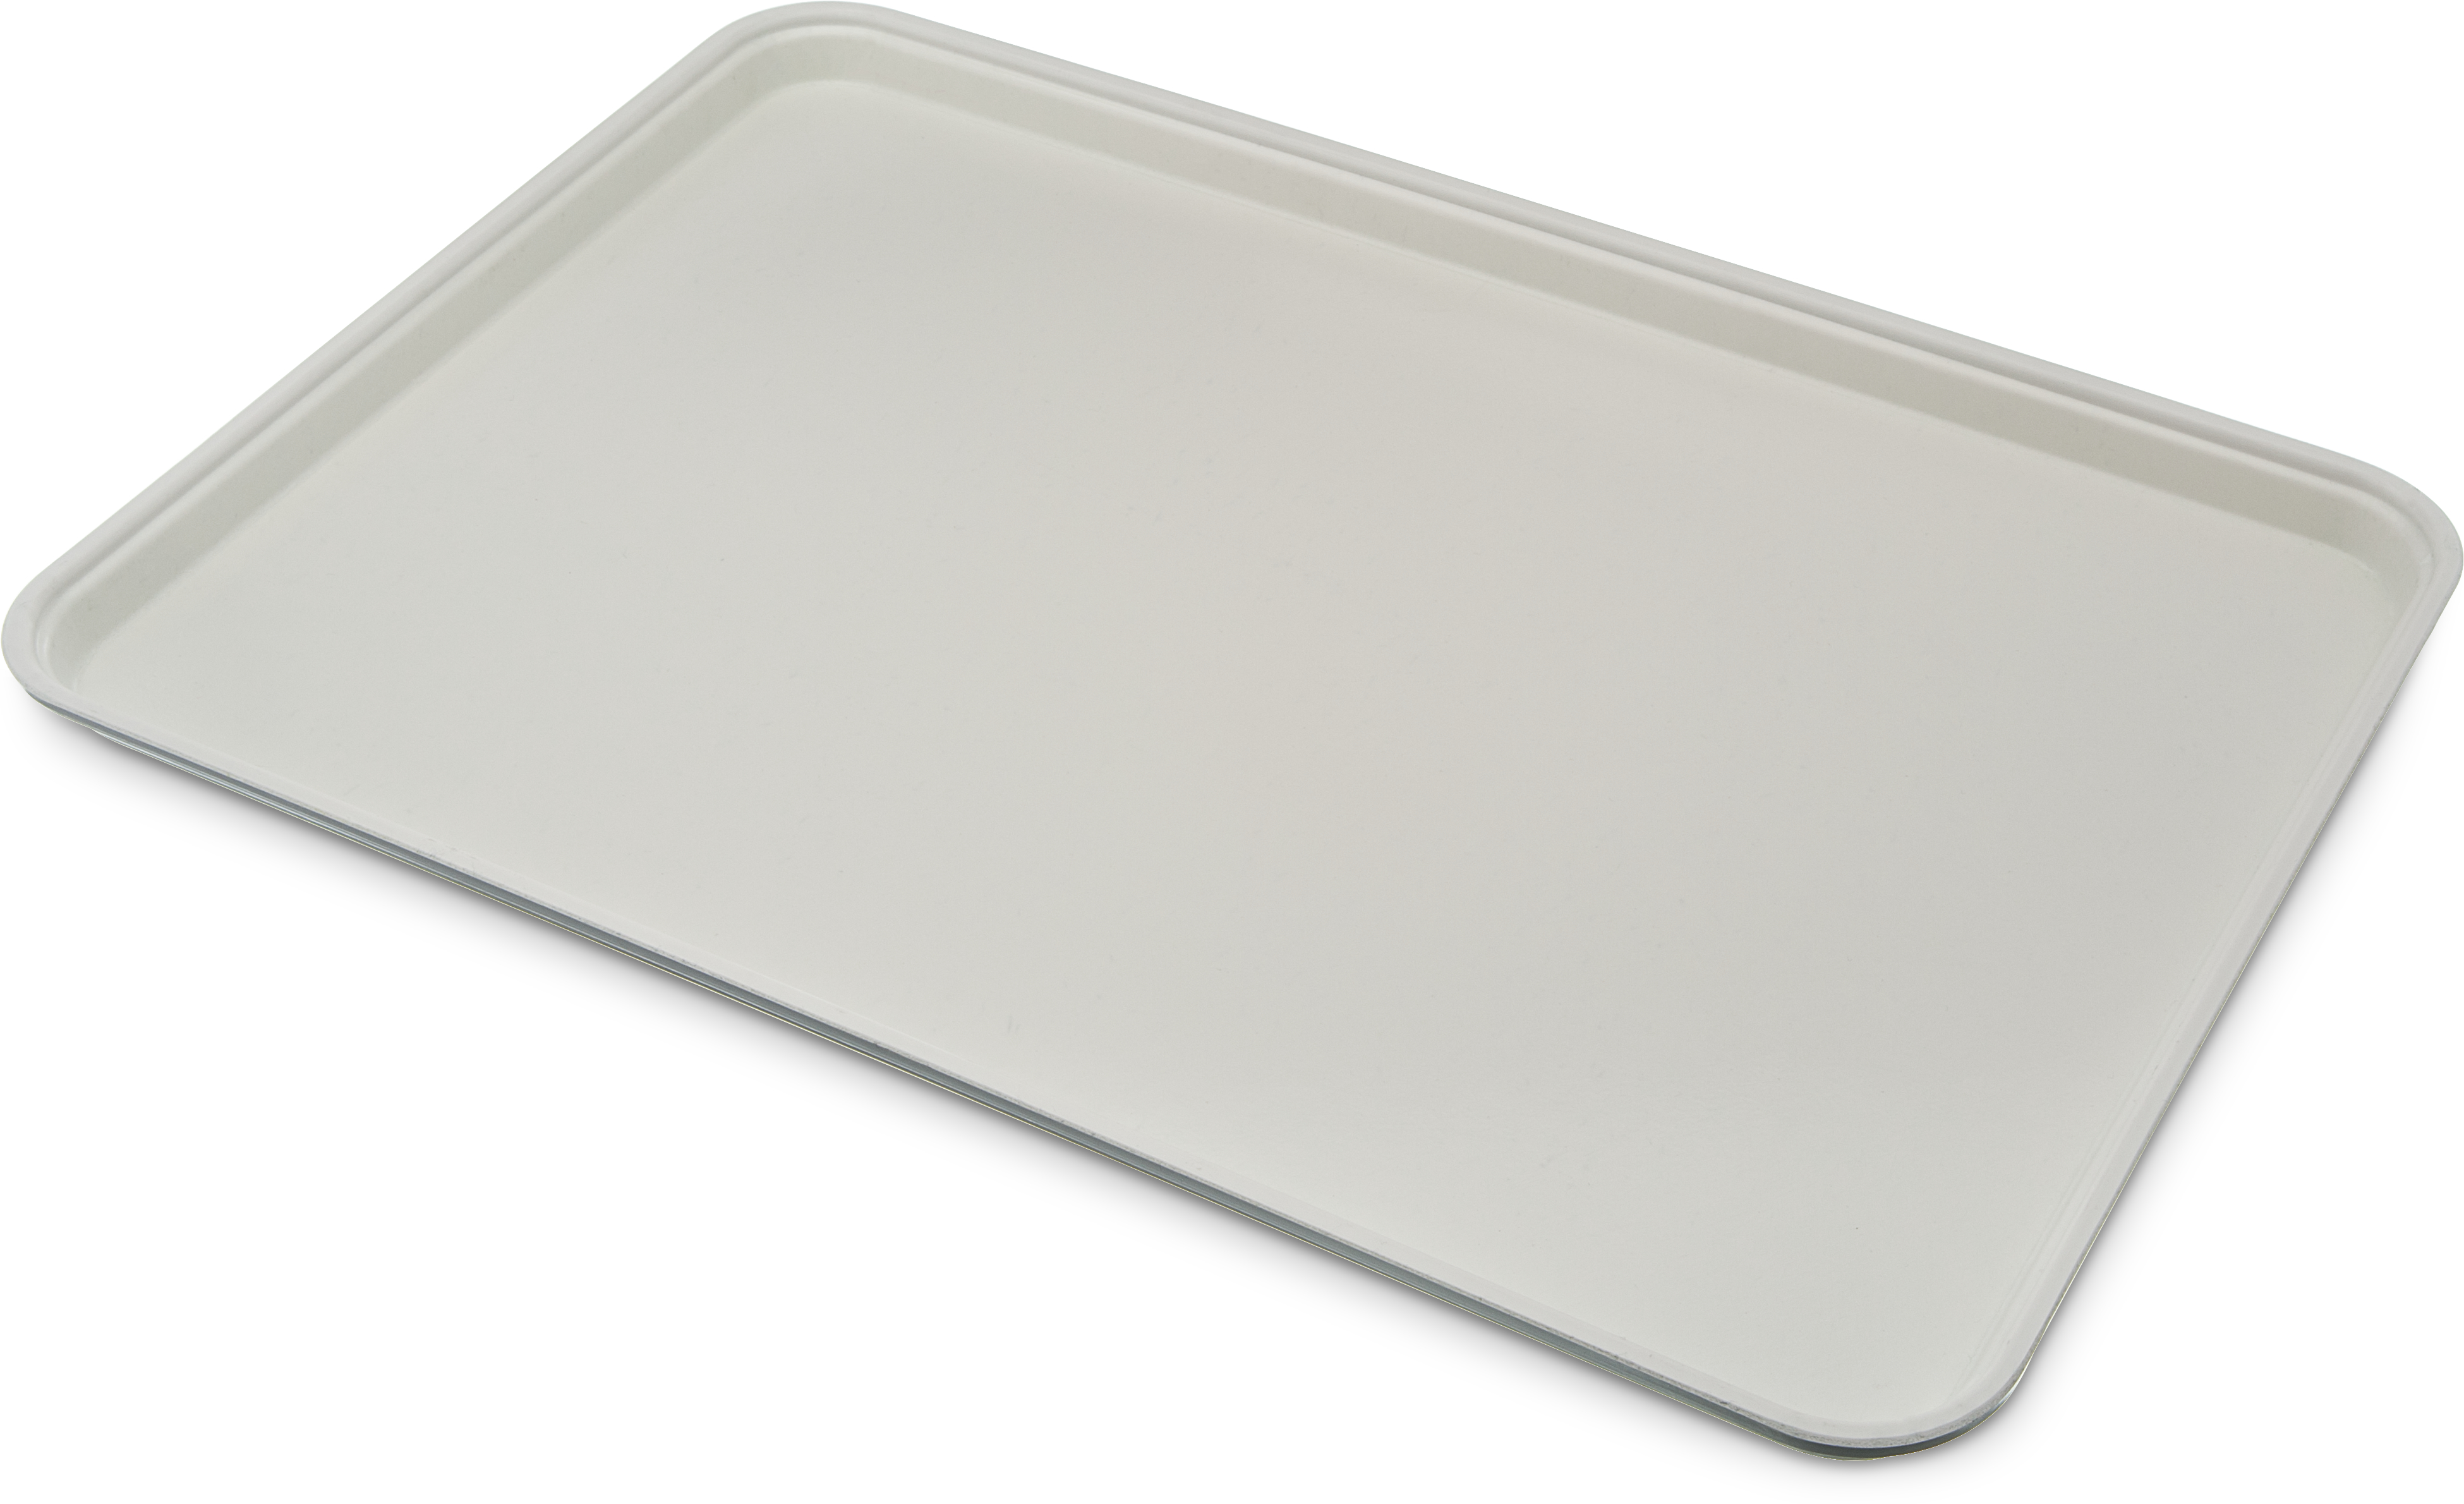 Glasteel Tray Display/Bakery 17.9 x 25.6 - Bone White